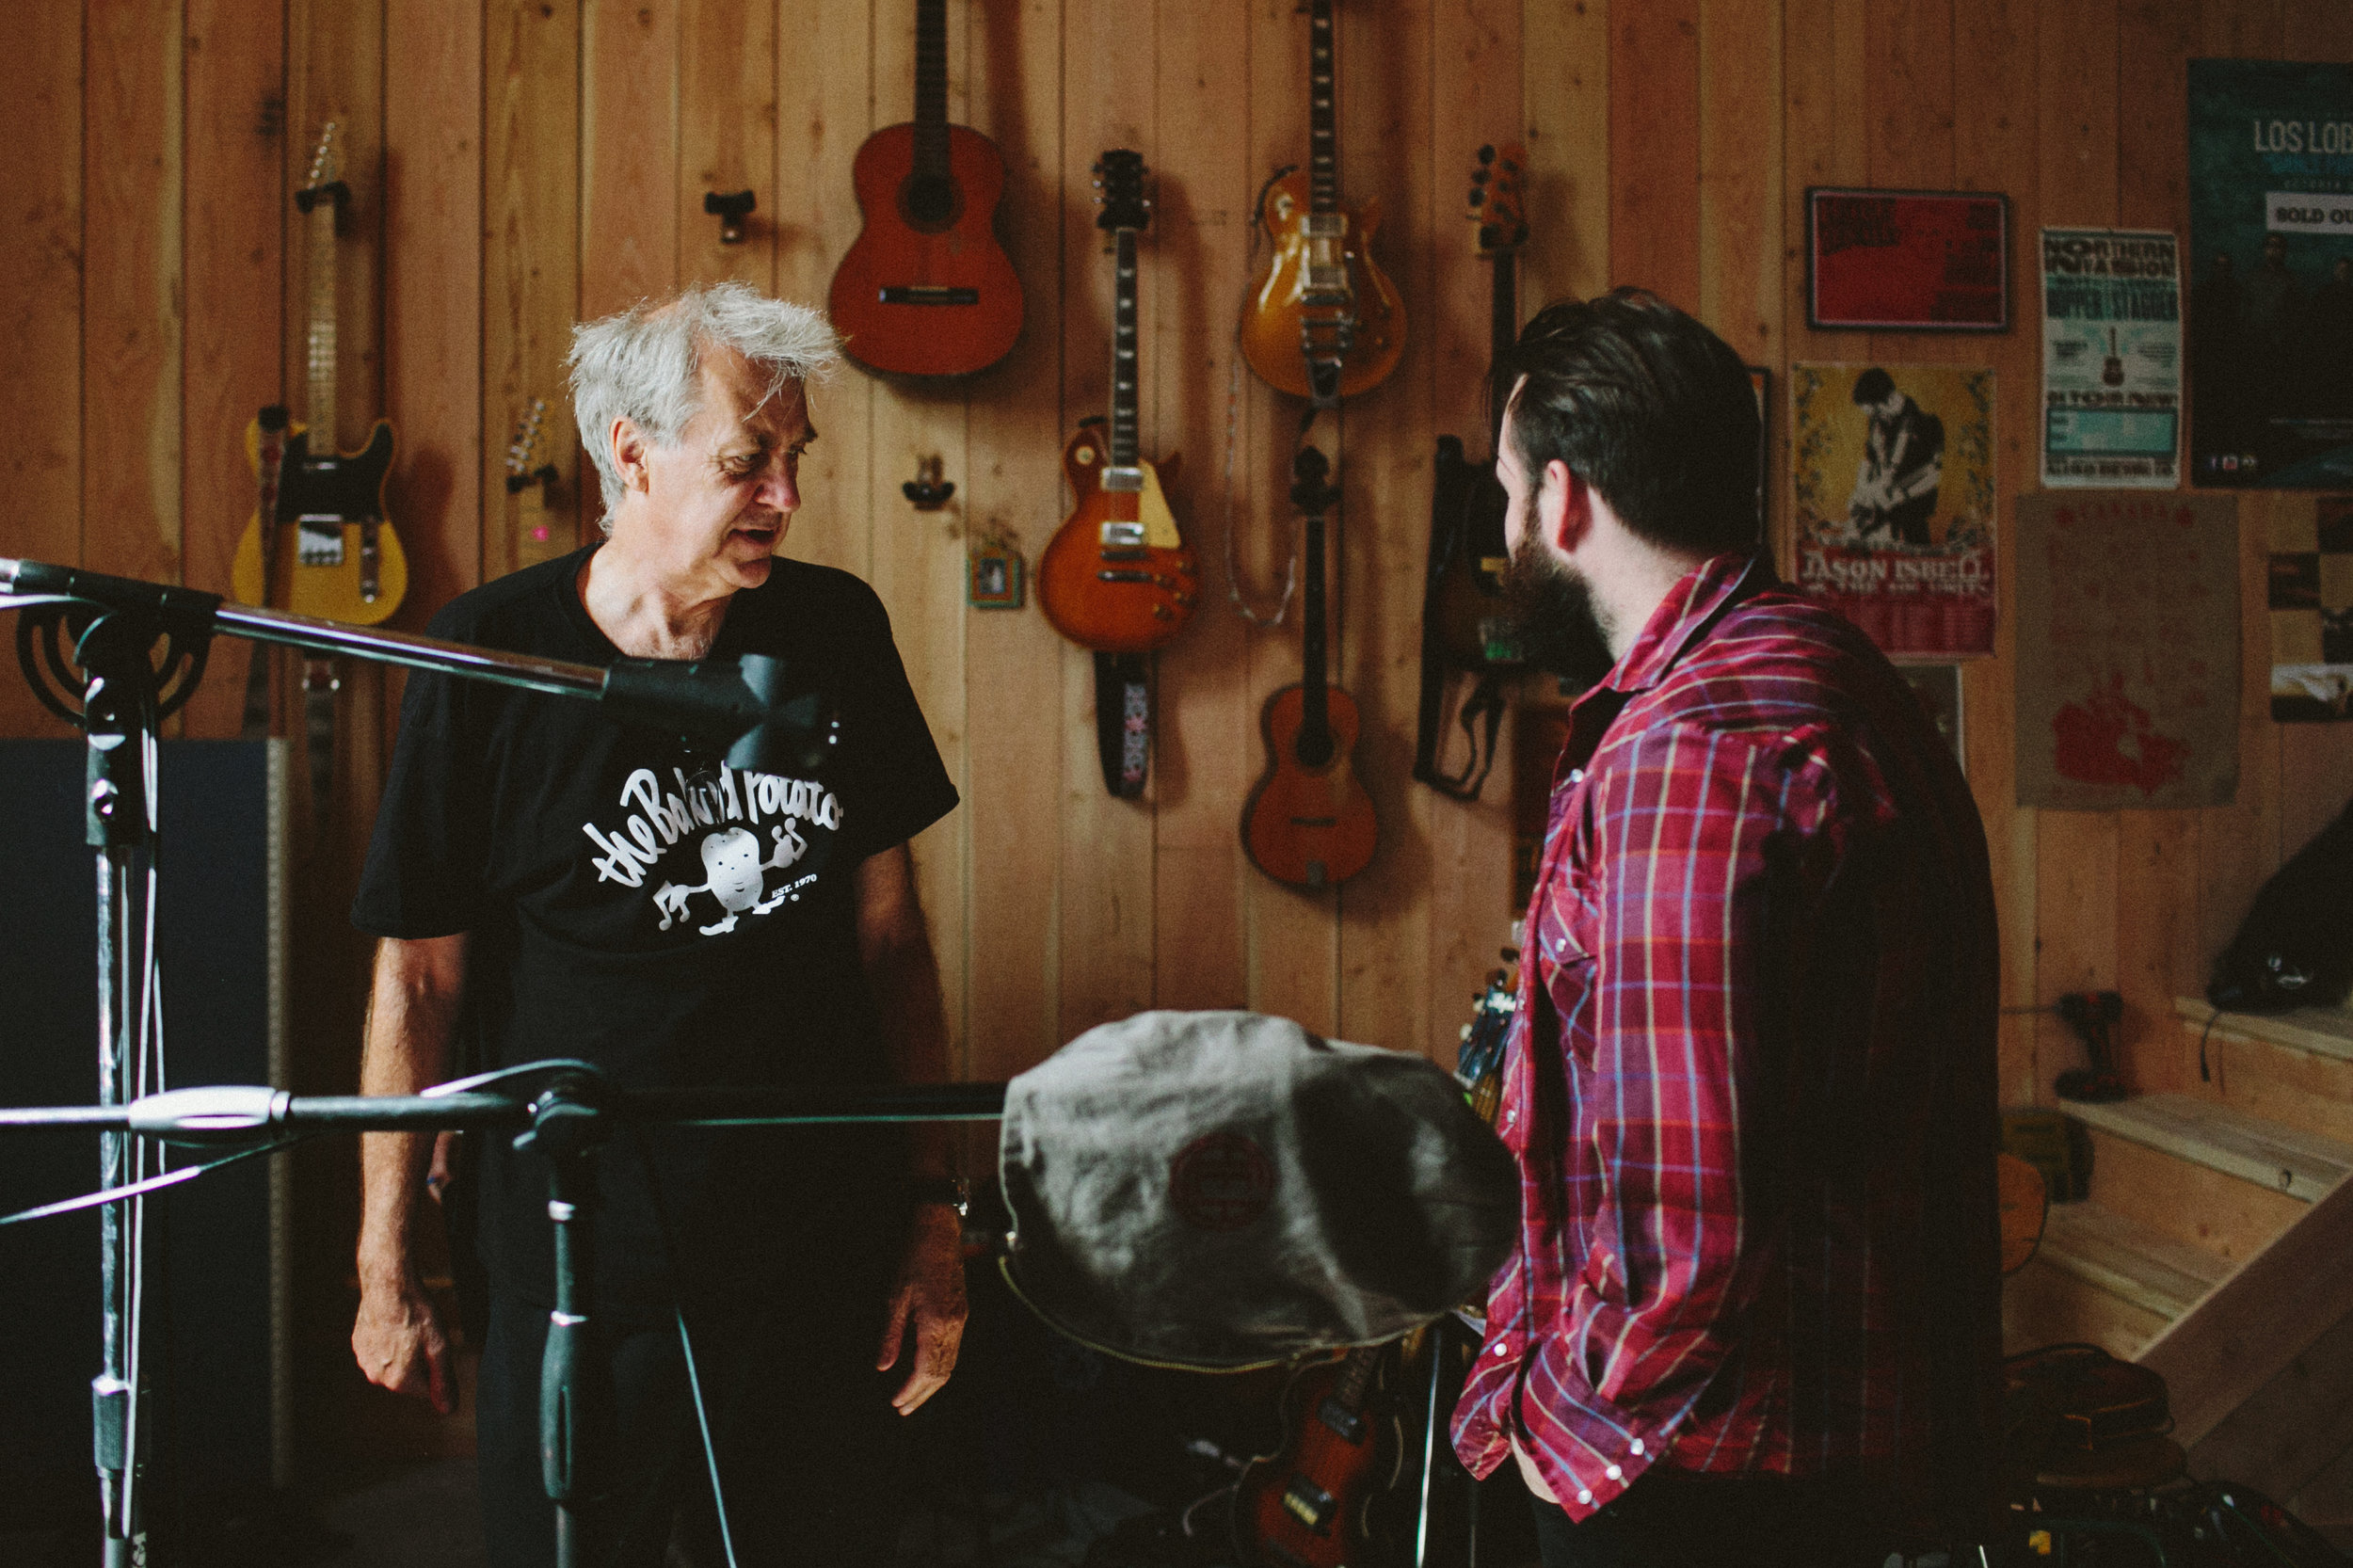 The Legendary Pete Thomas and Leeroy sort out some last minute drum business.